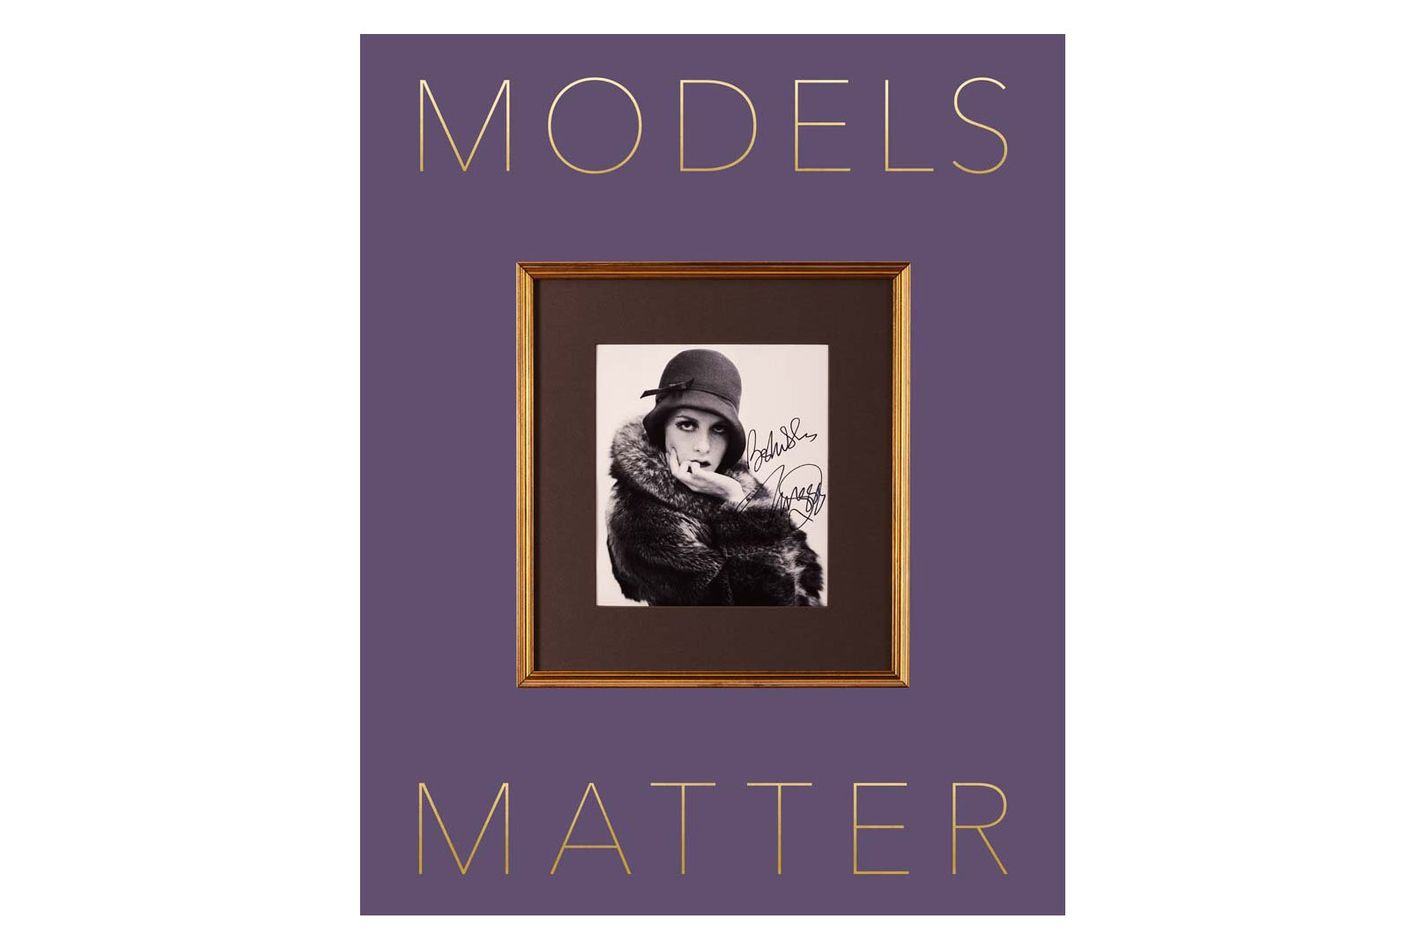 Models Matter by Christopher Niquet